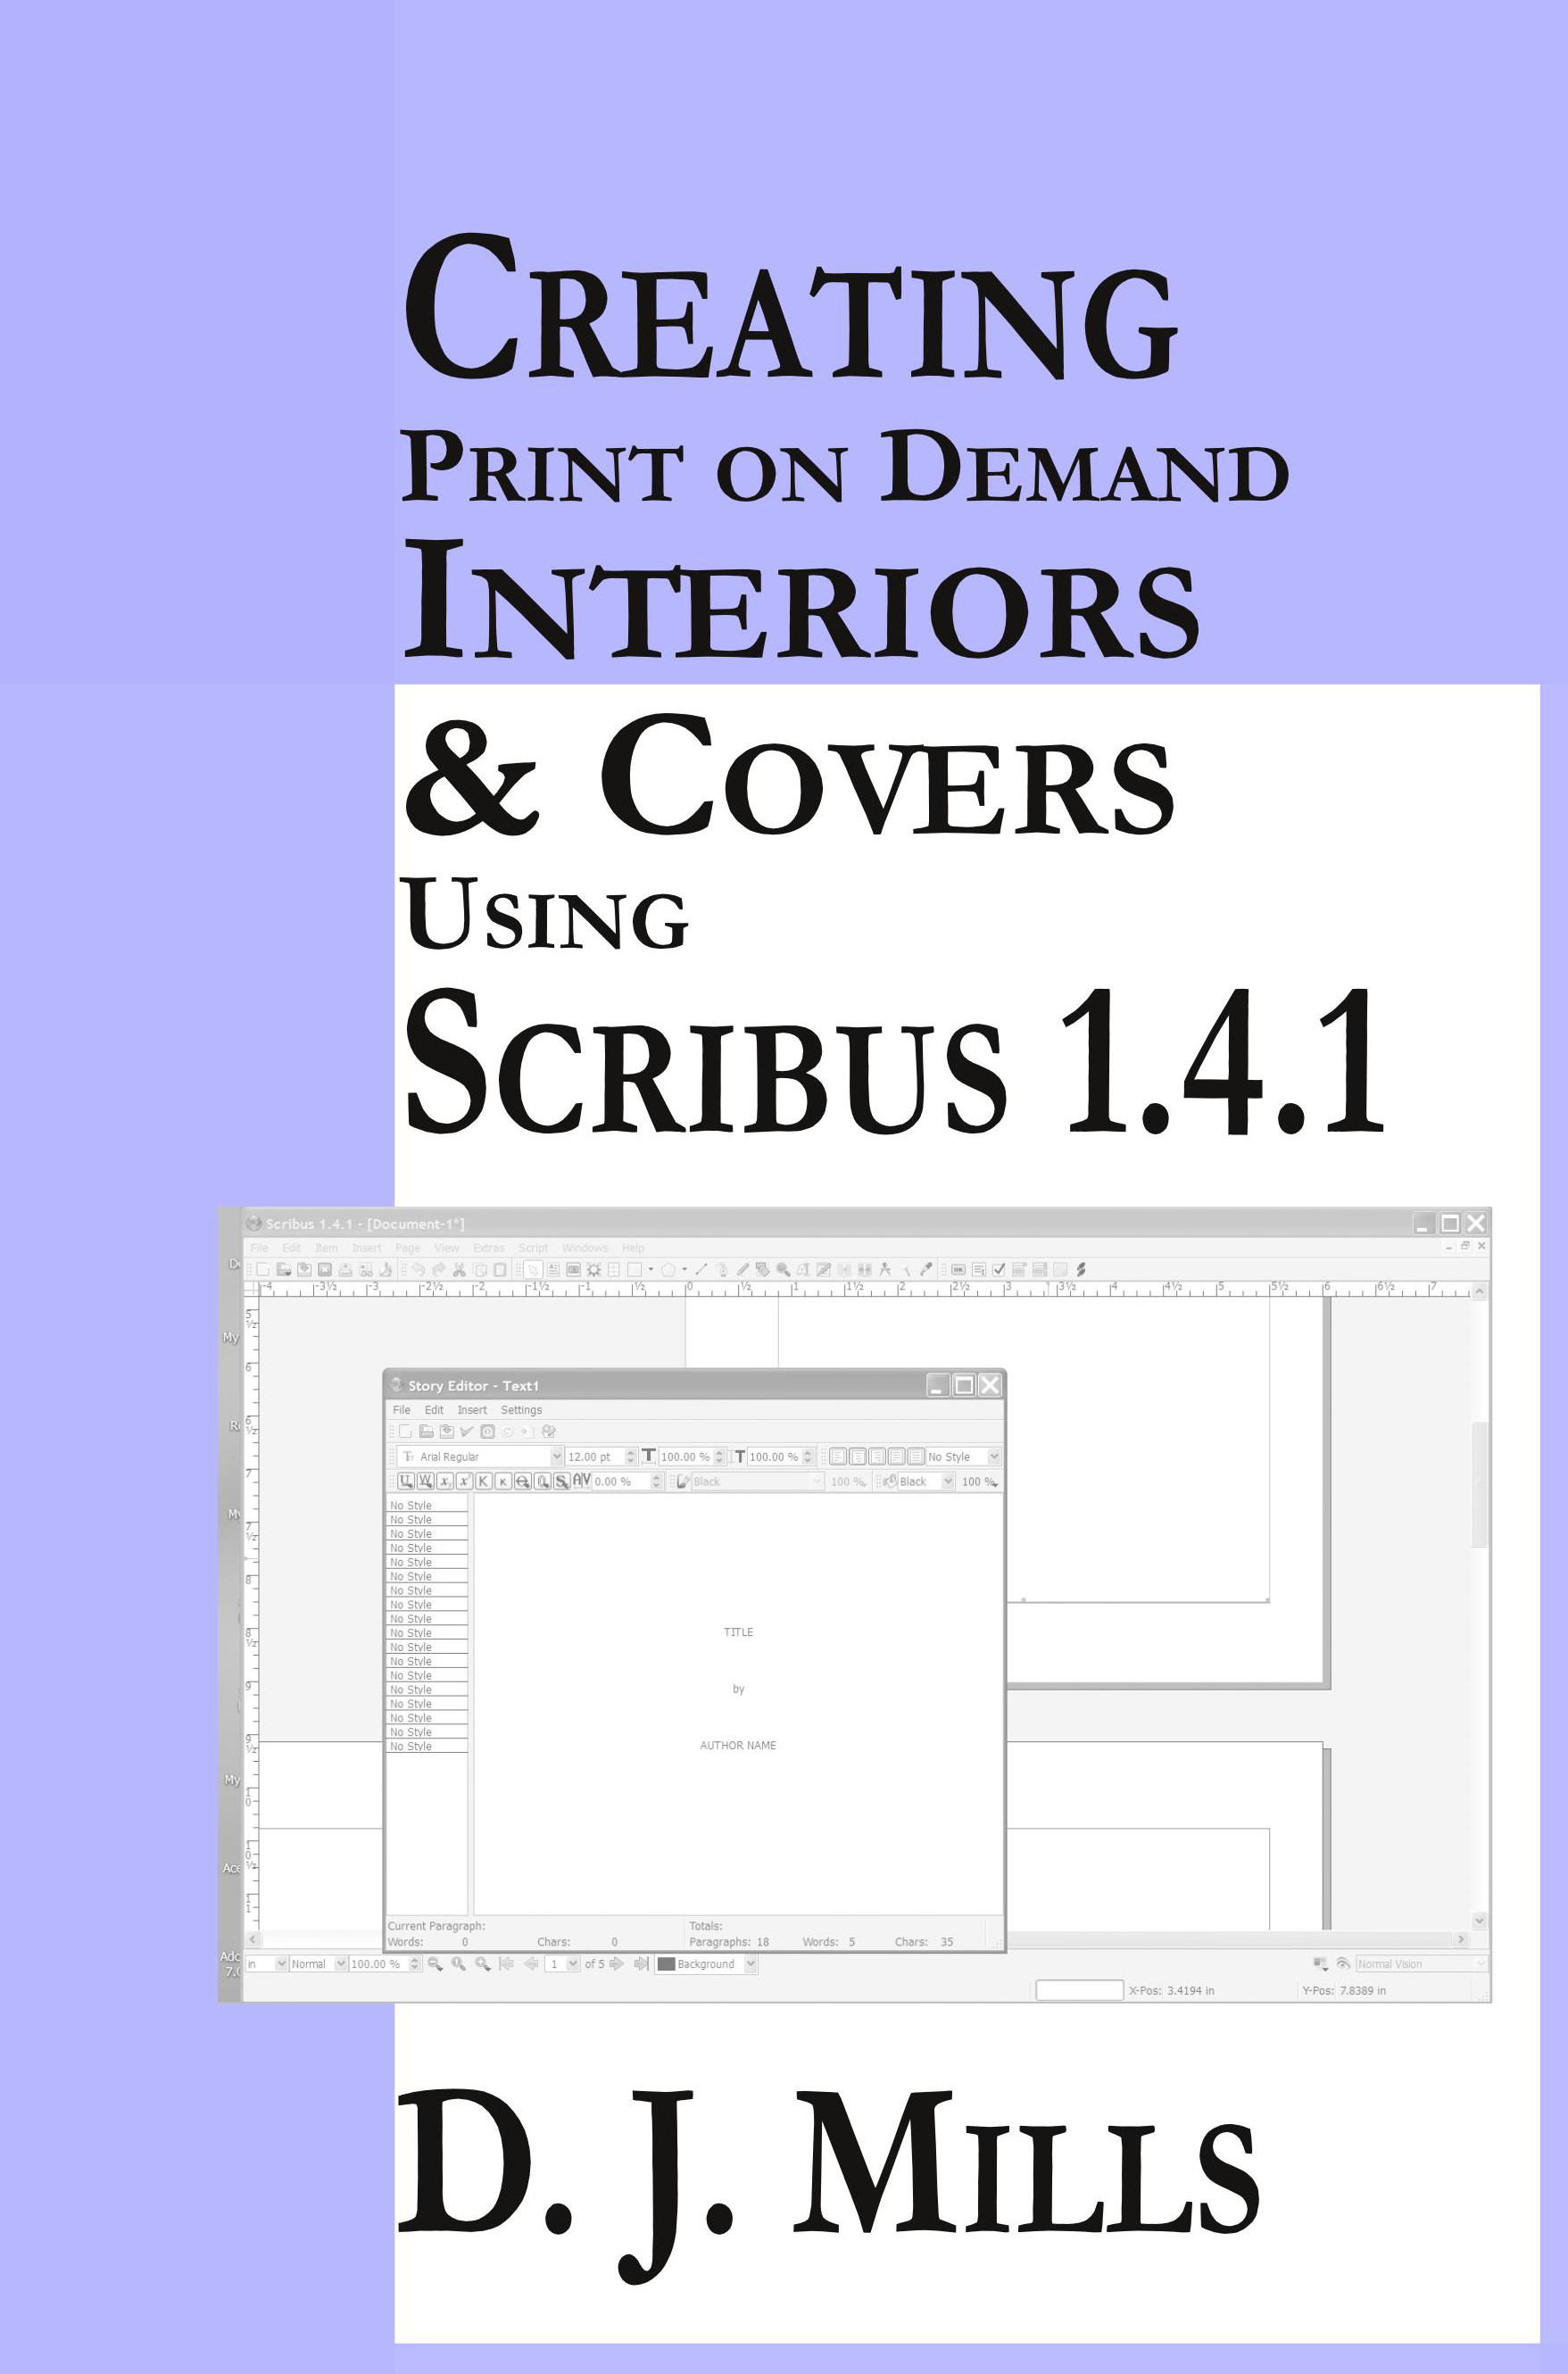 Creating Print On Demand Interiors & Covers Using Scribus 1 4 1, an Ebook  by D J Mills